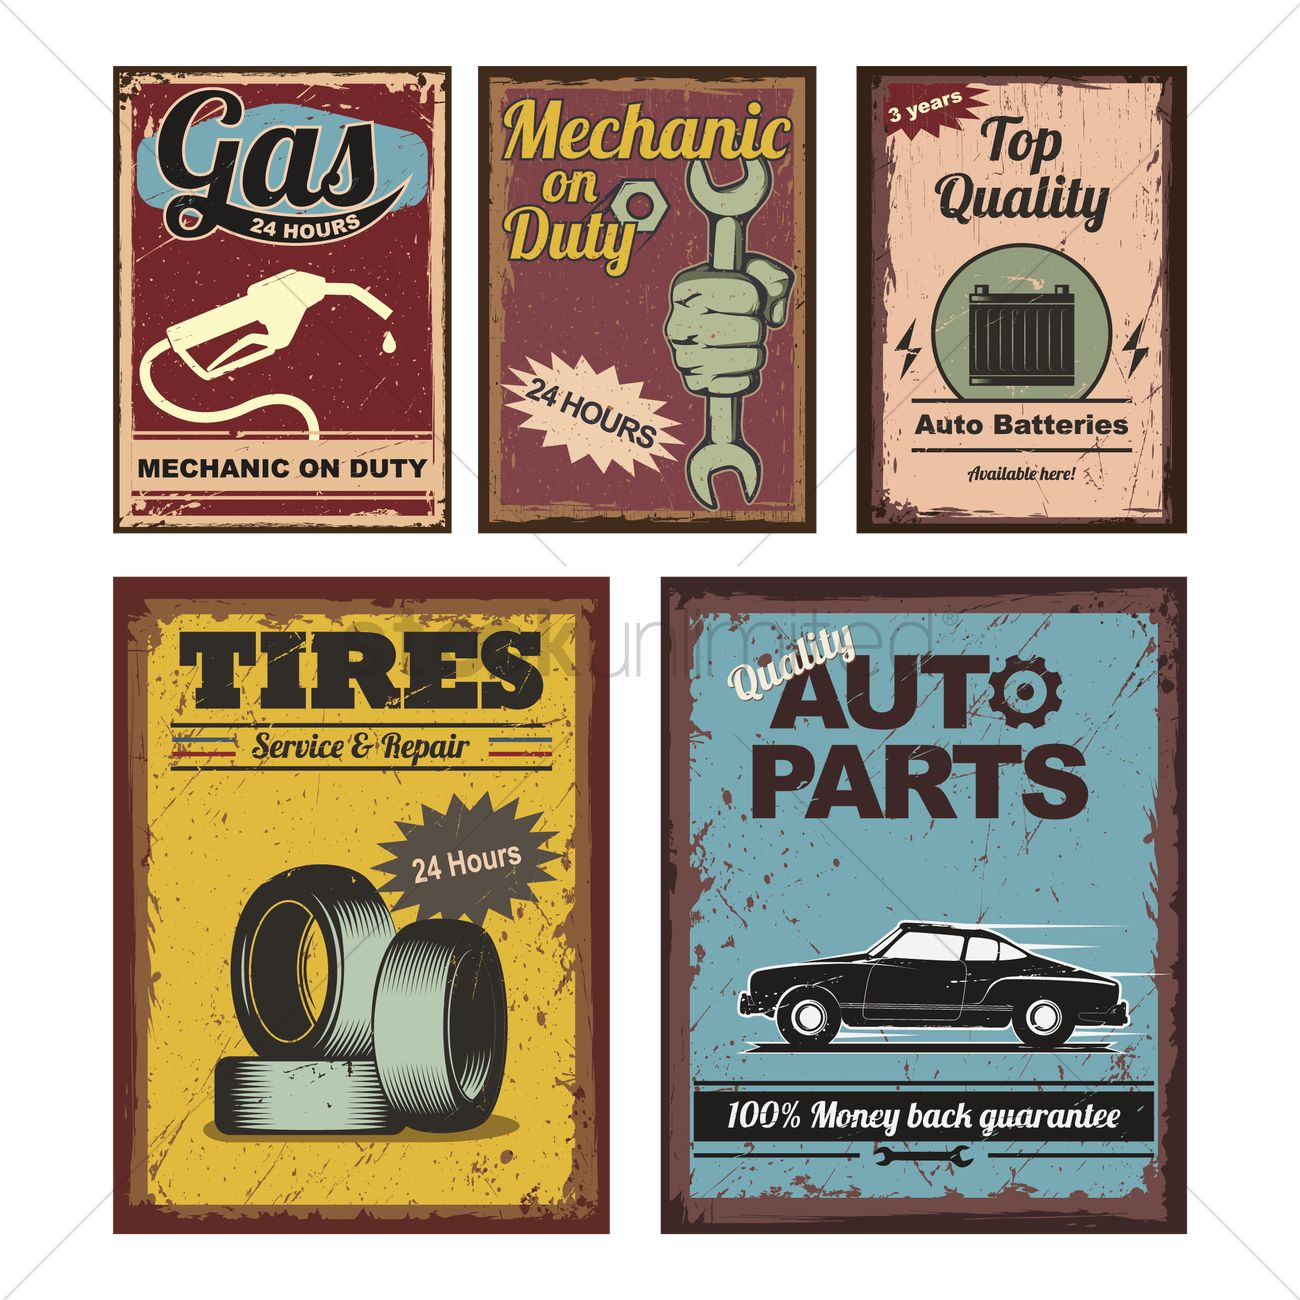 Vintage car posters Vector Image - 1515550   StockUnlimited